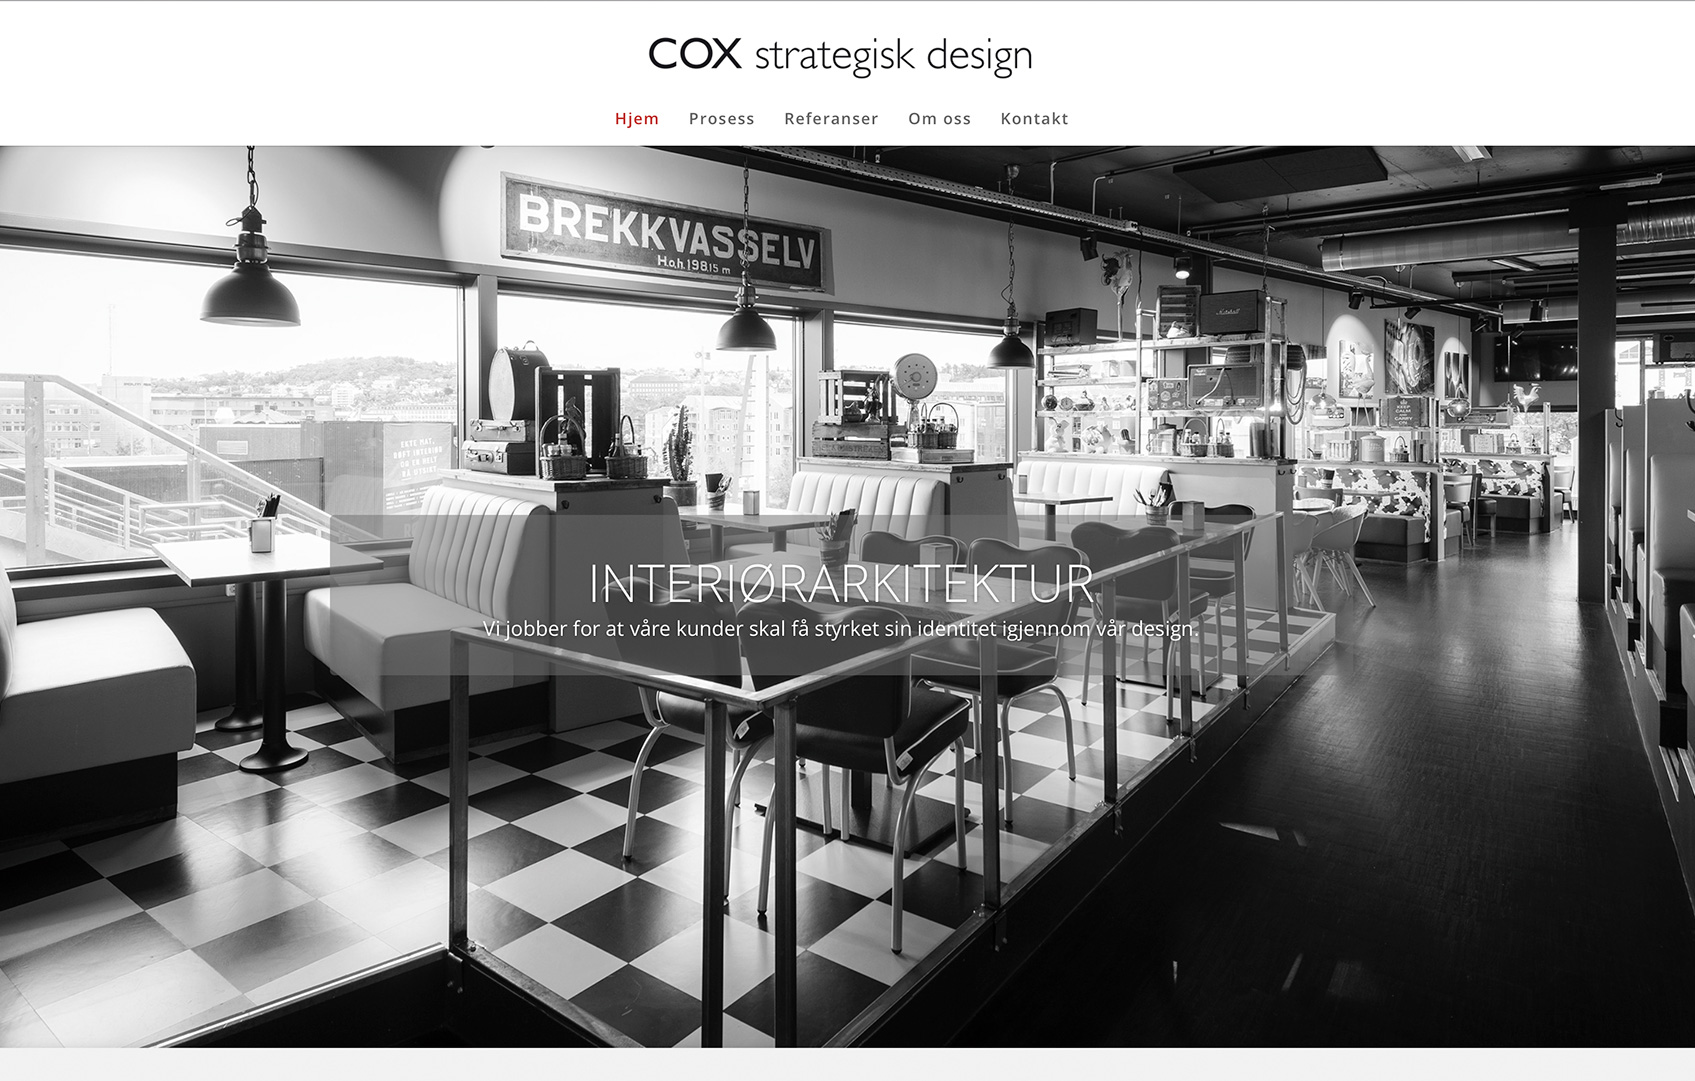 Ny nettside COX strategisk design